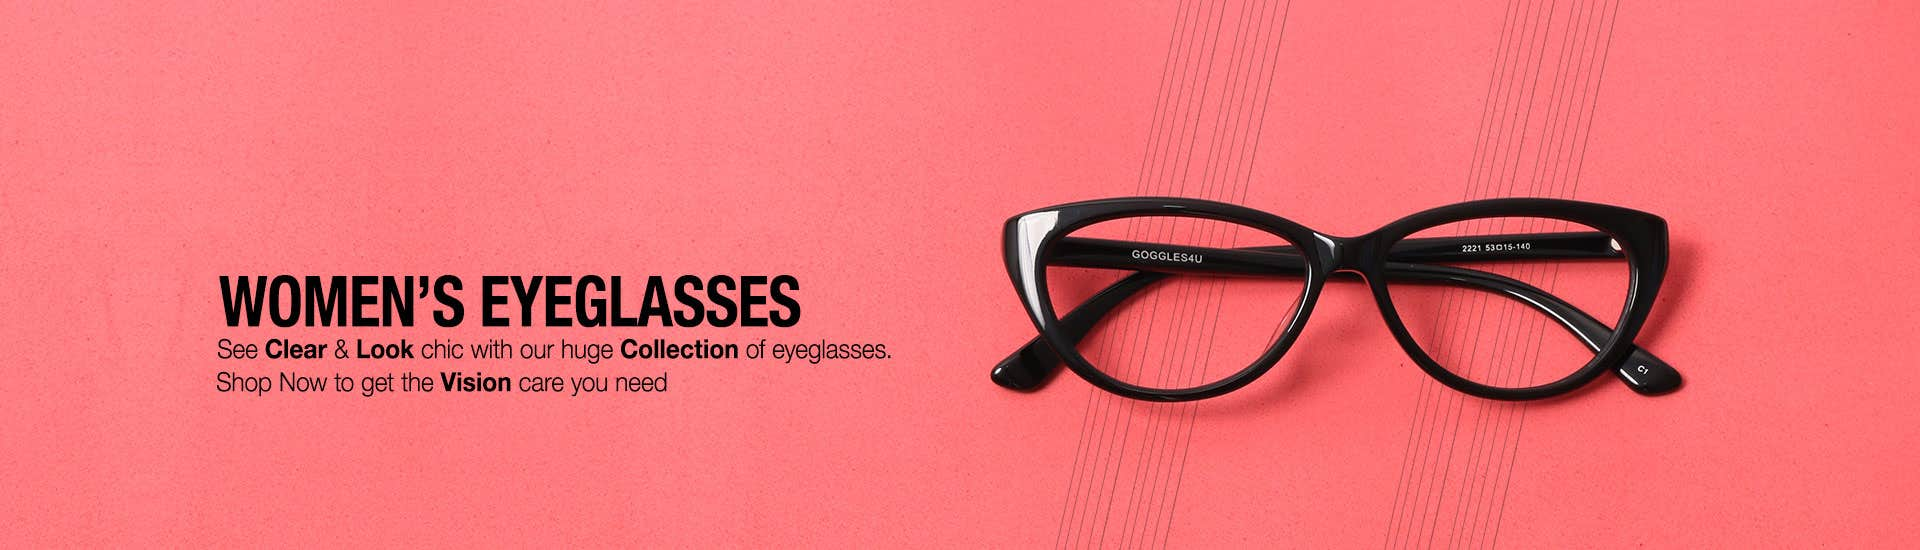 eyeglasses k27m  Home 路 Prescription Eyeglasses; Women